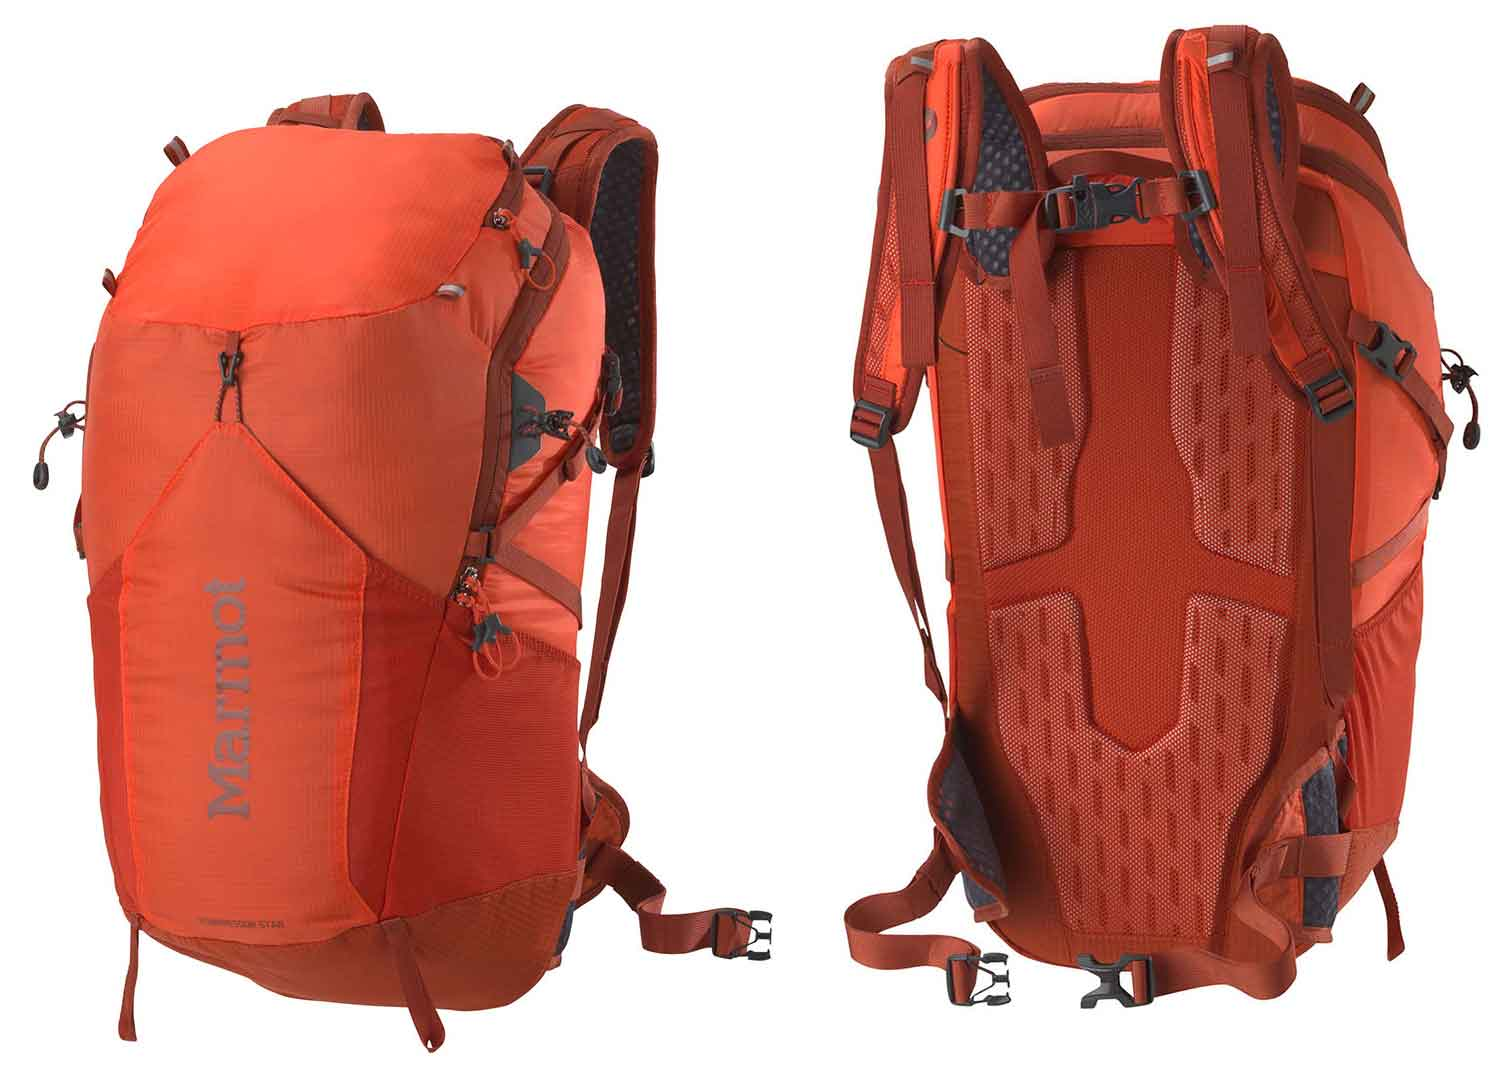 marmot-kompressor-star-packs